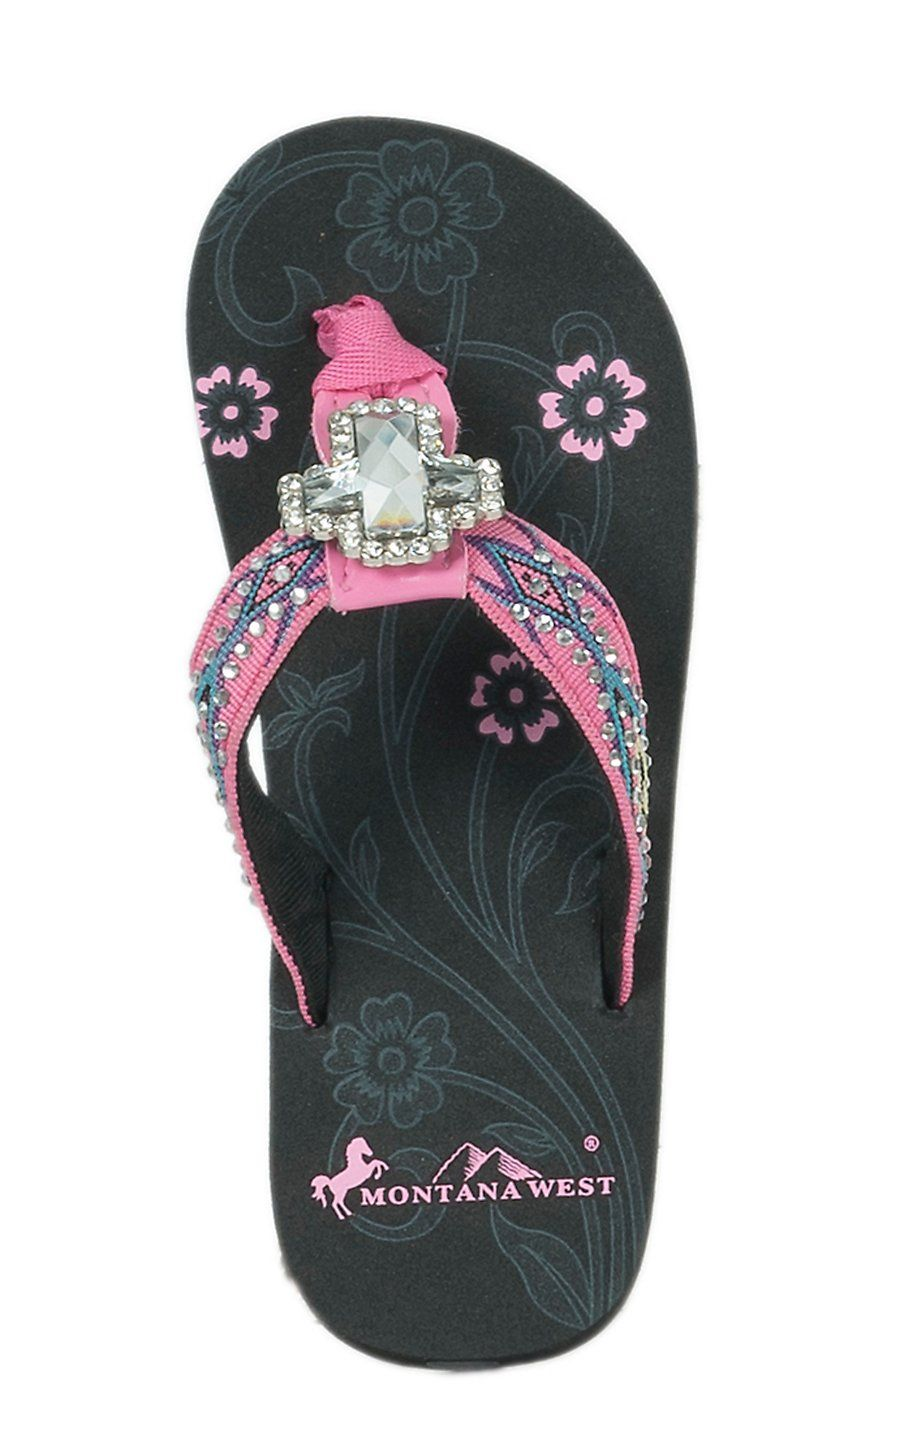 2c73455d3c15fd Montana West Girl s Youth Black with Pink Aztec Strap with Rhinestones   Cross  Concho Flip Flops